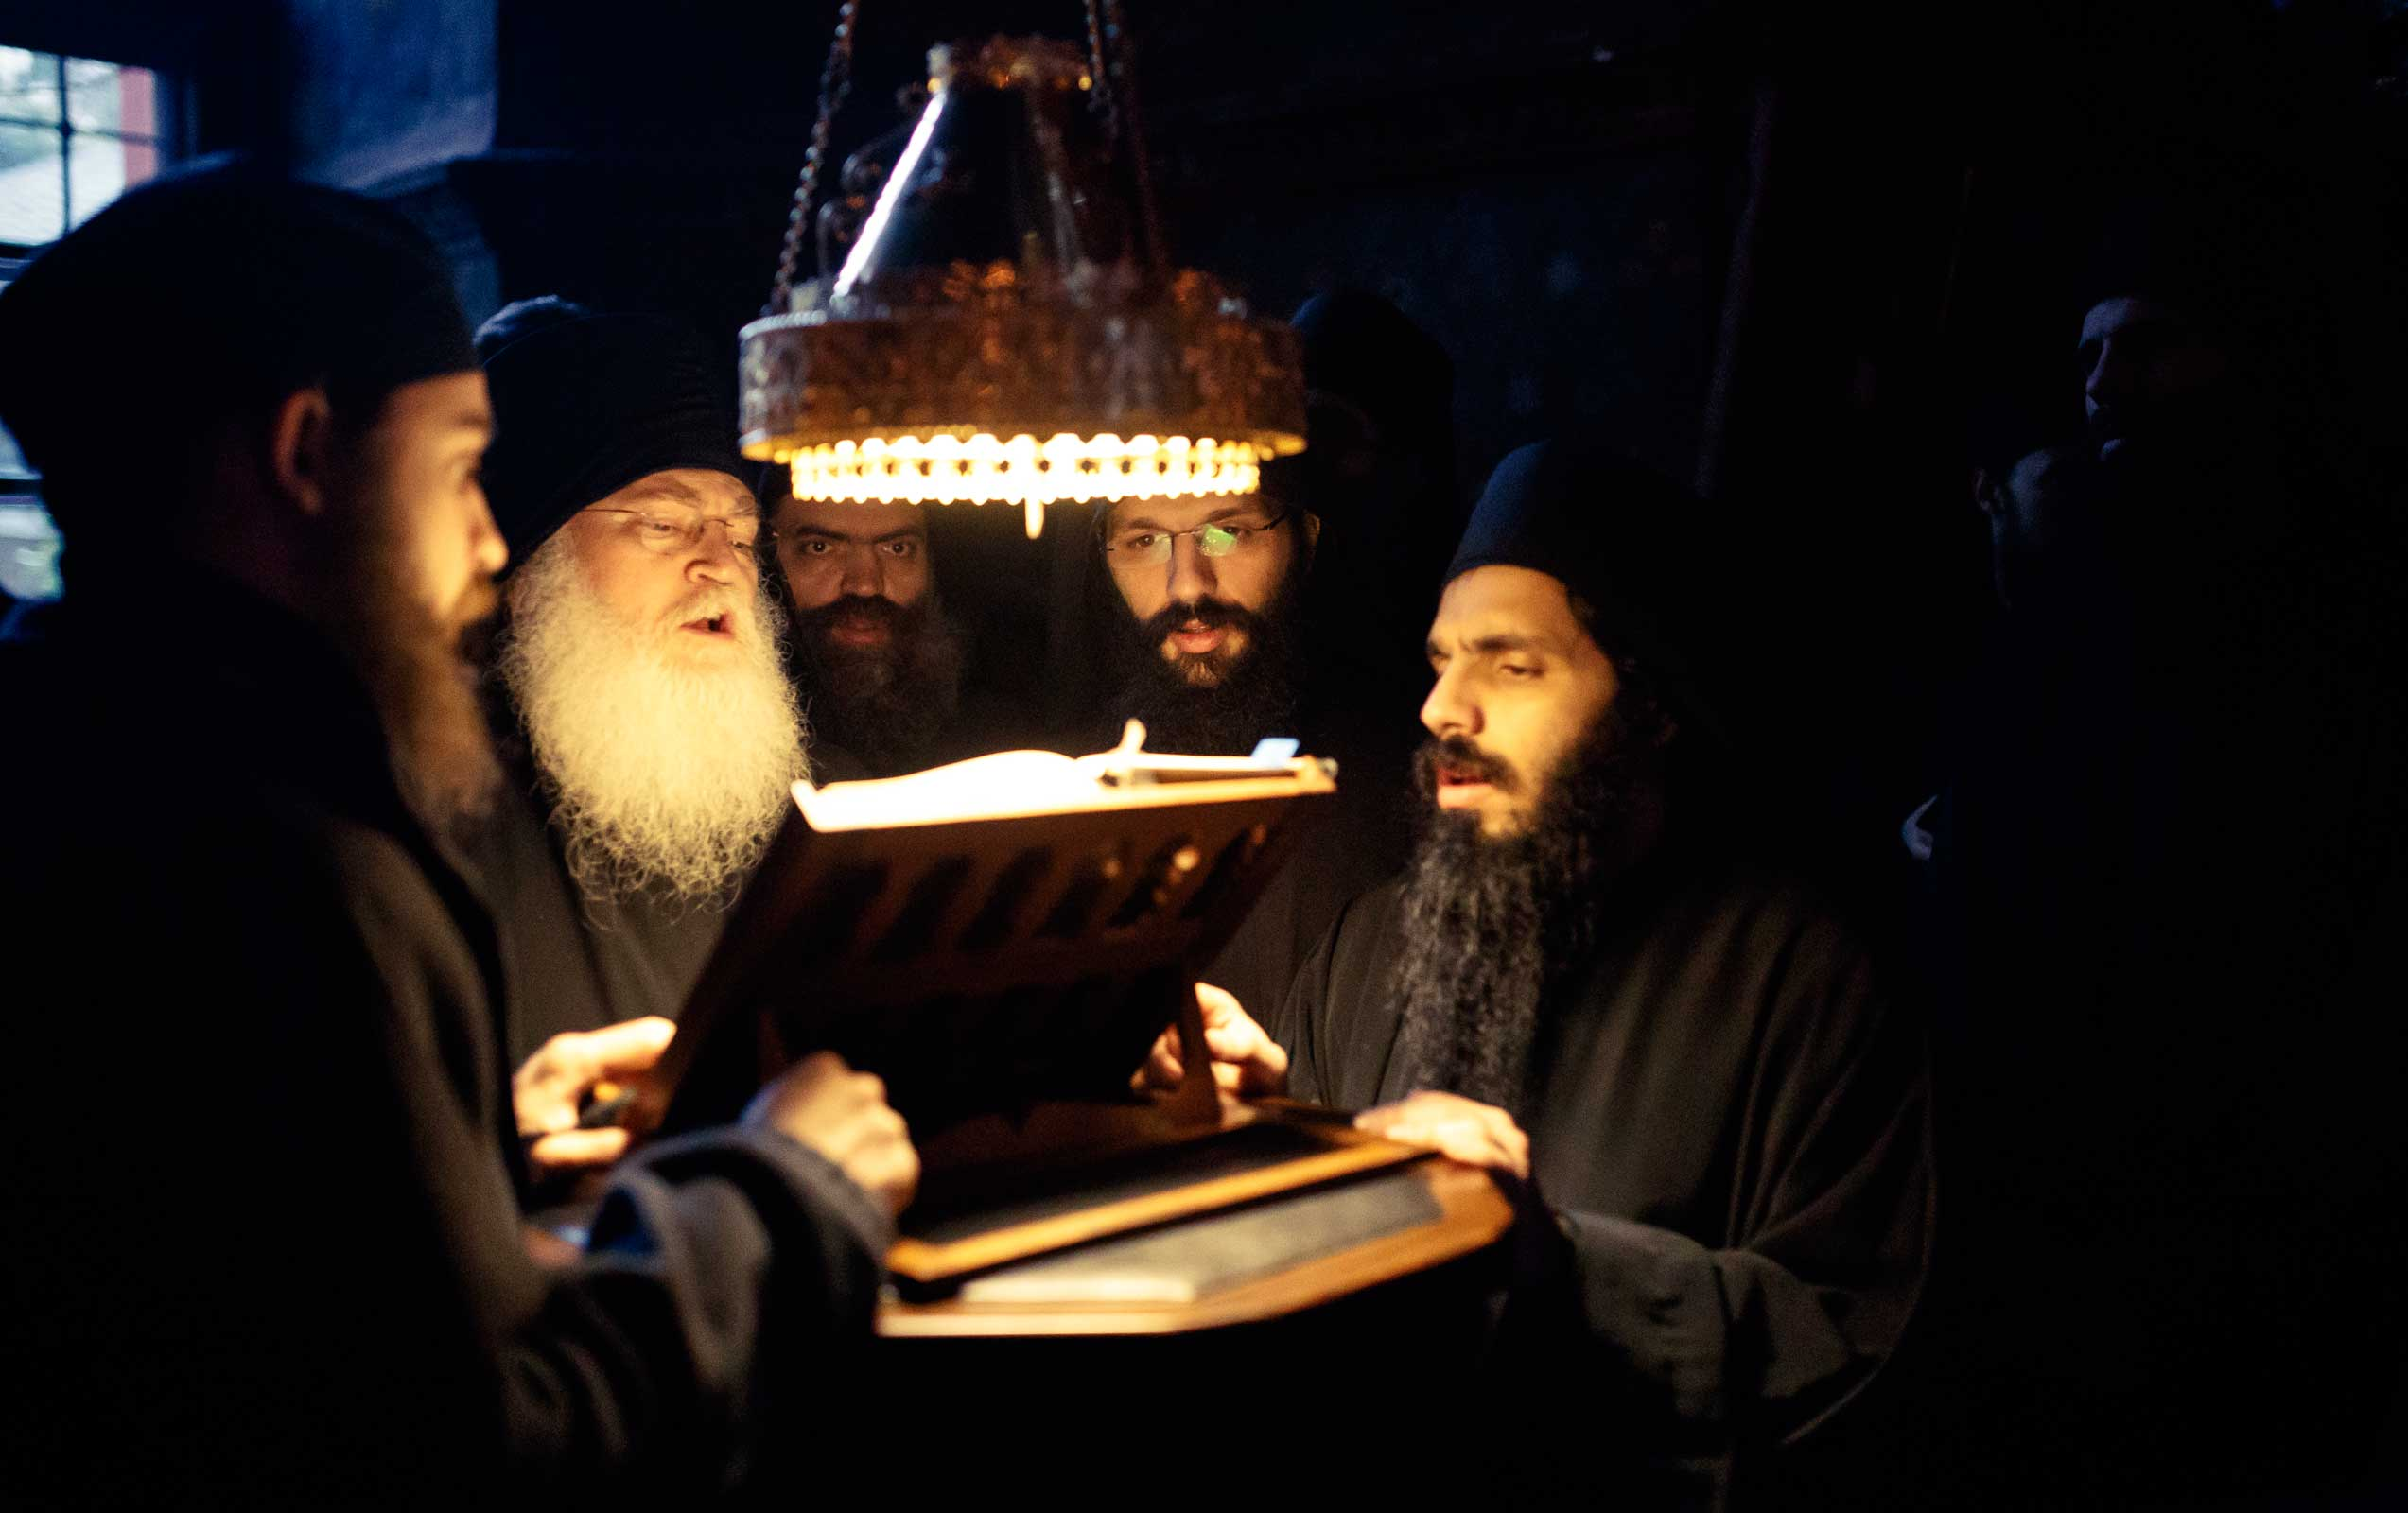 voice - Ascetic Experience, Vatopaidi (Vatopedi), Mount Athos, Holy Mountain